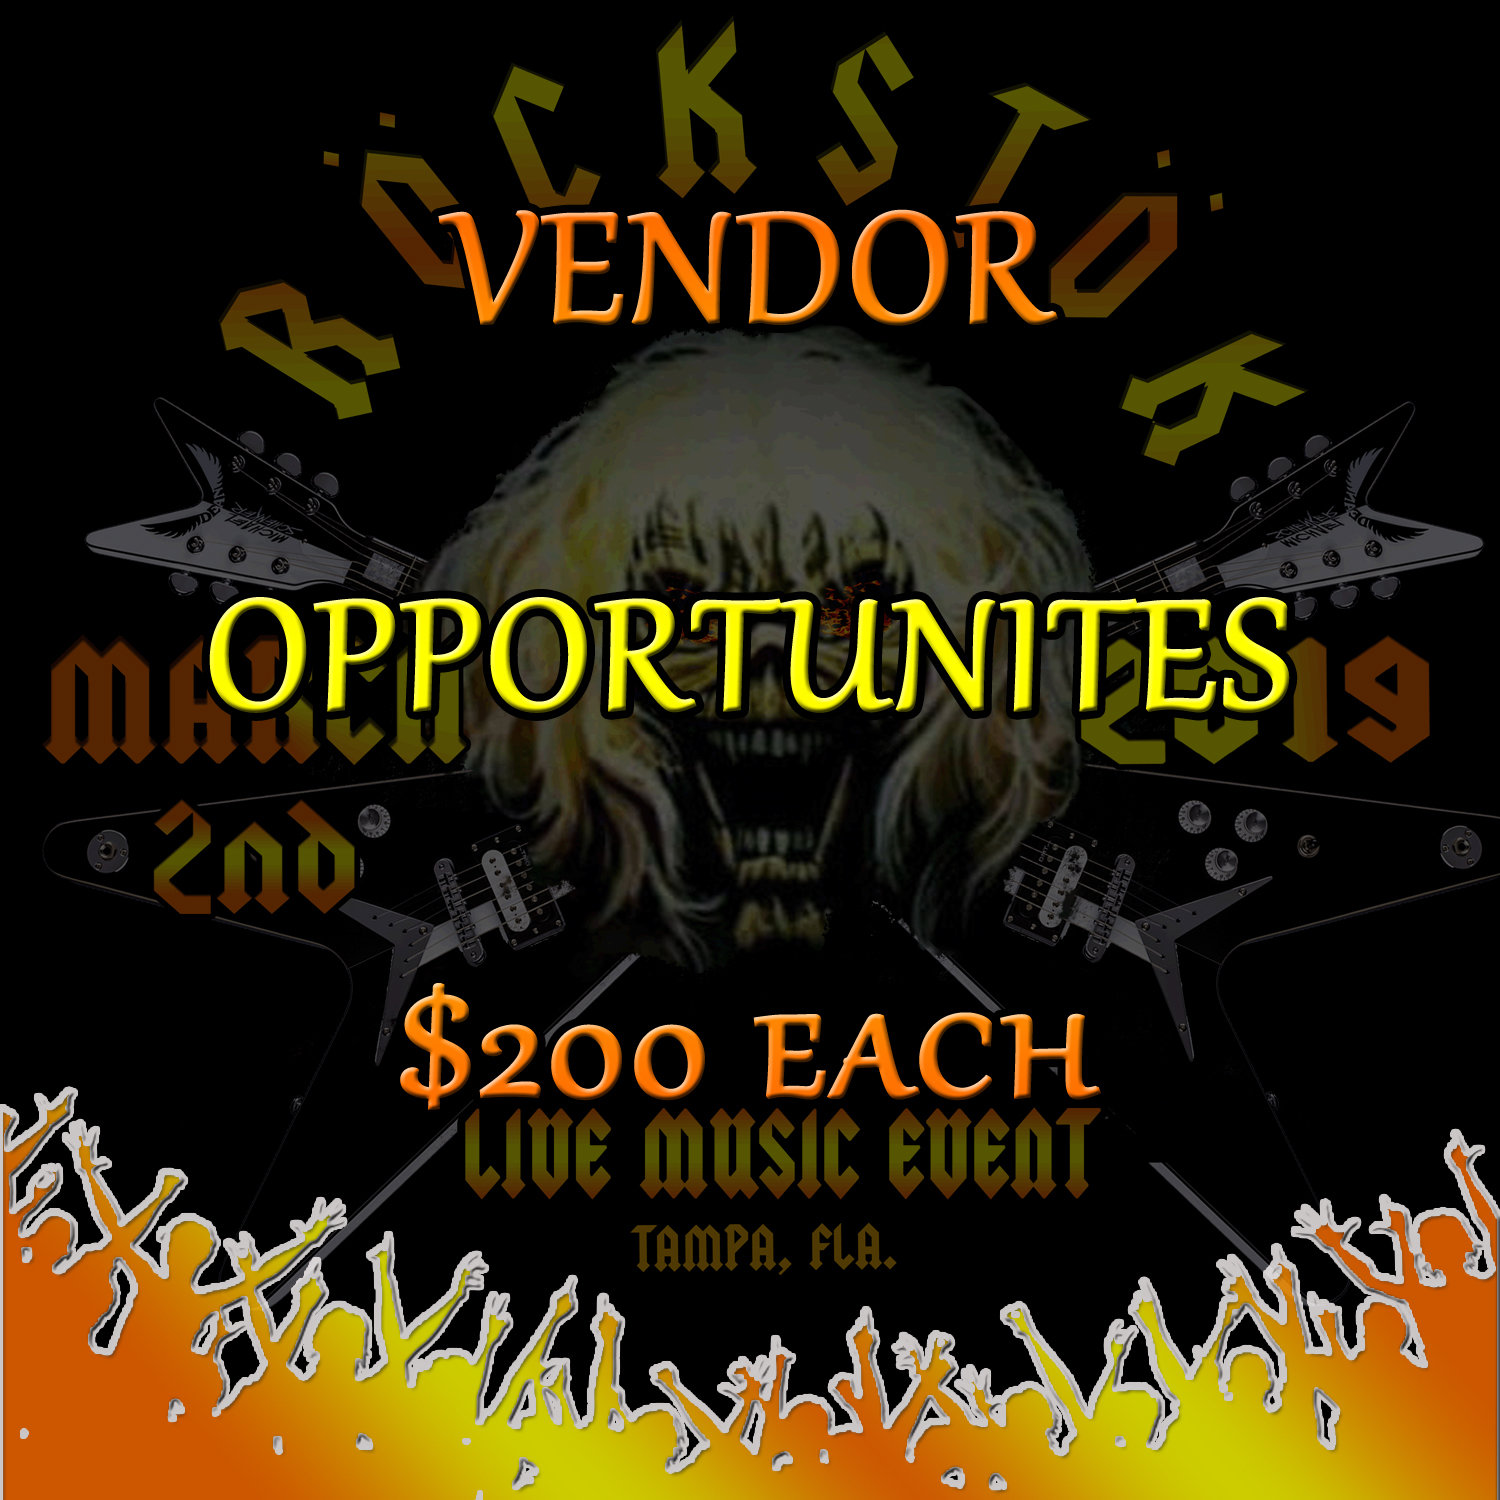 Vendor Opportunities Vendor200